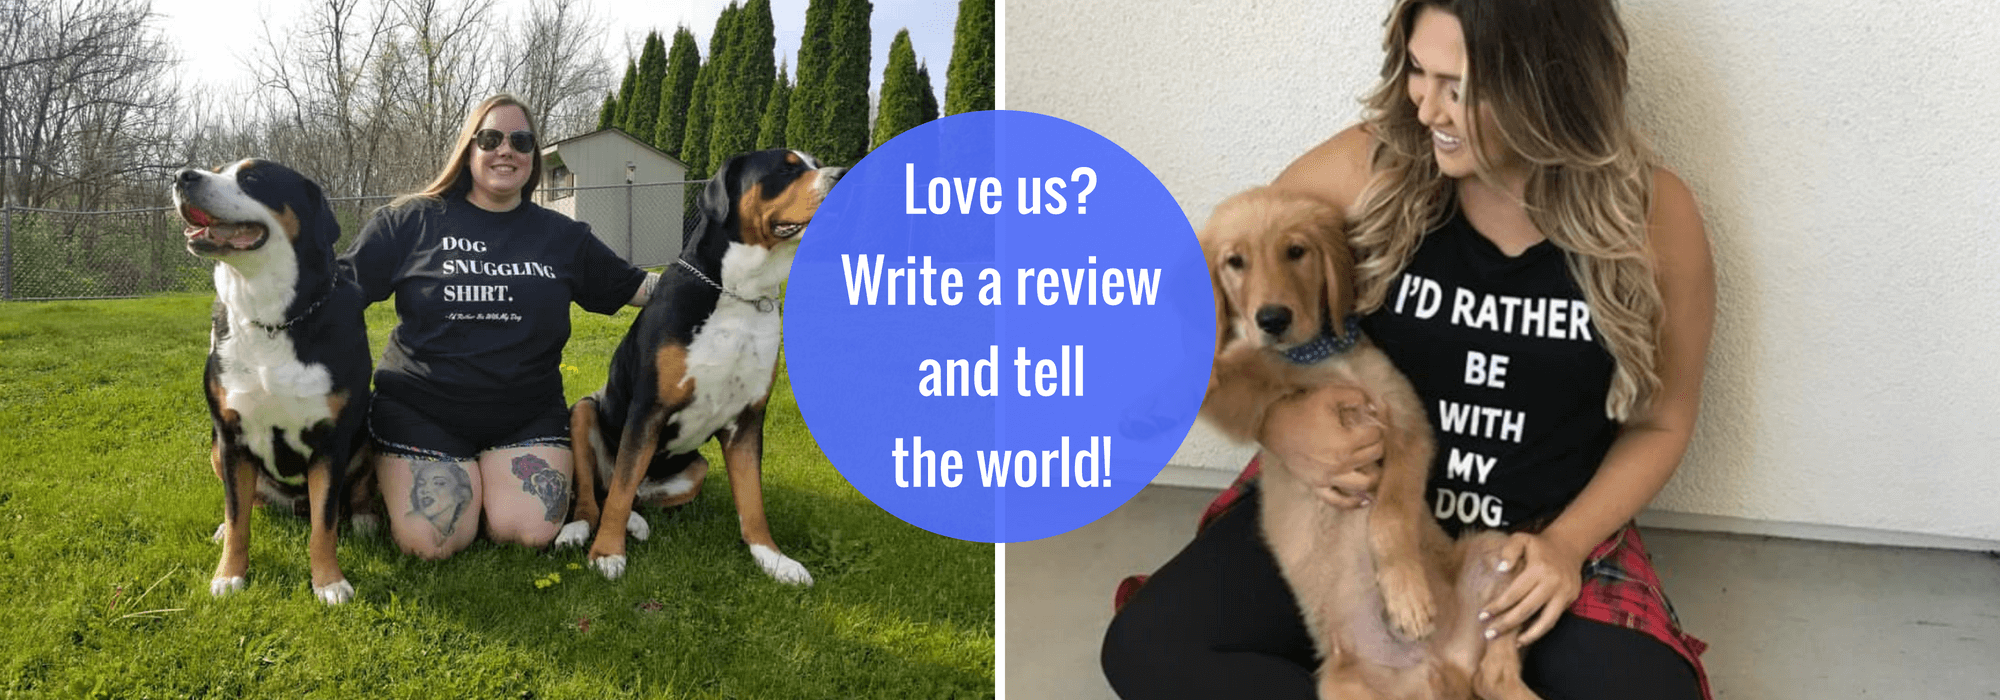 Reviews – I'd Rather Be With My Dog